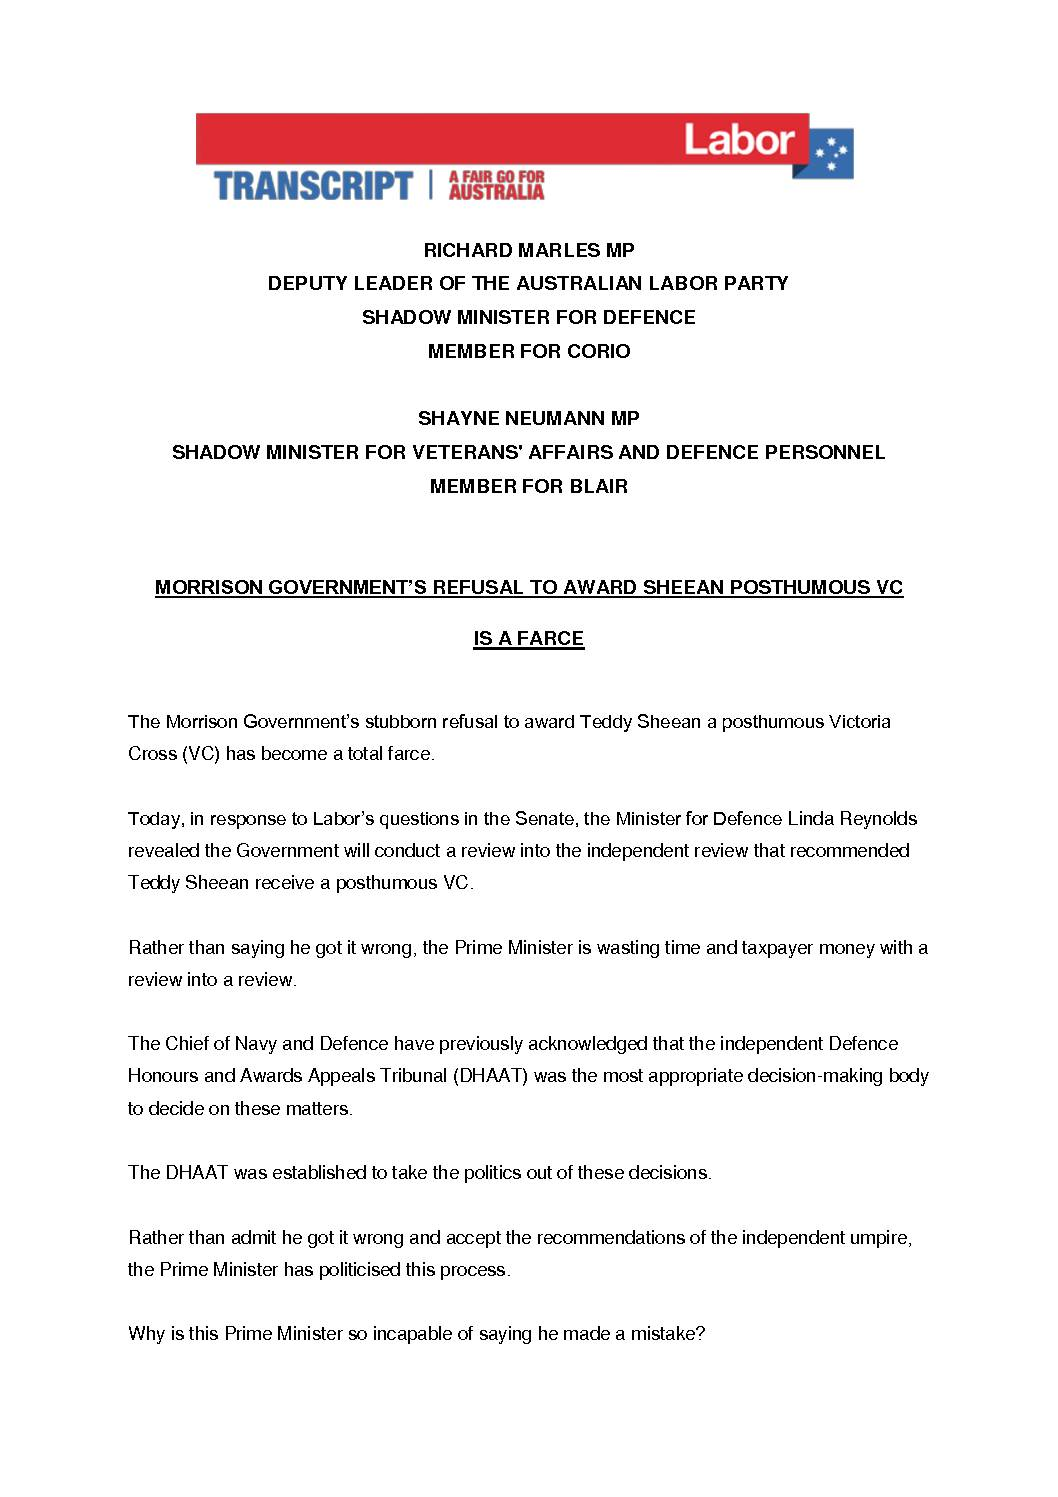 20.06.11-MORRISON-GOVERNMENTS-REFUSAL-TO-AWARD-SHEEAN-POSTHUMOUS-VC-IS-A-FARCE-TRANSCRIPT